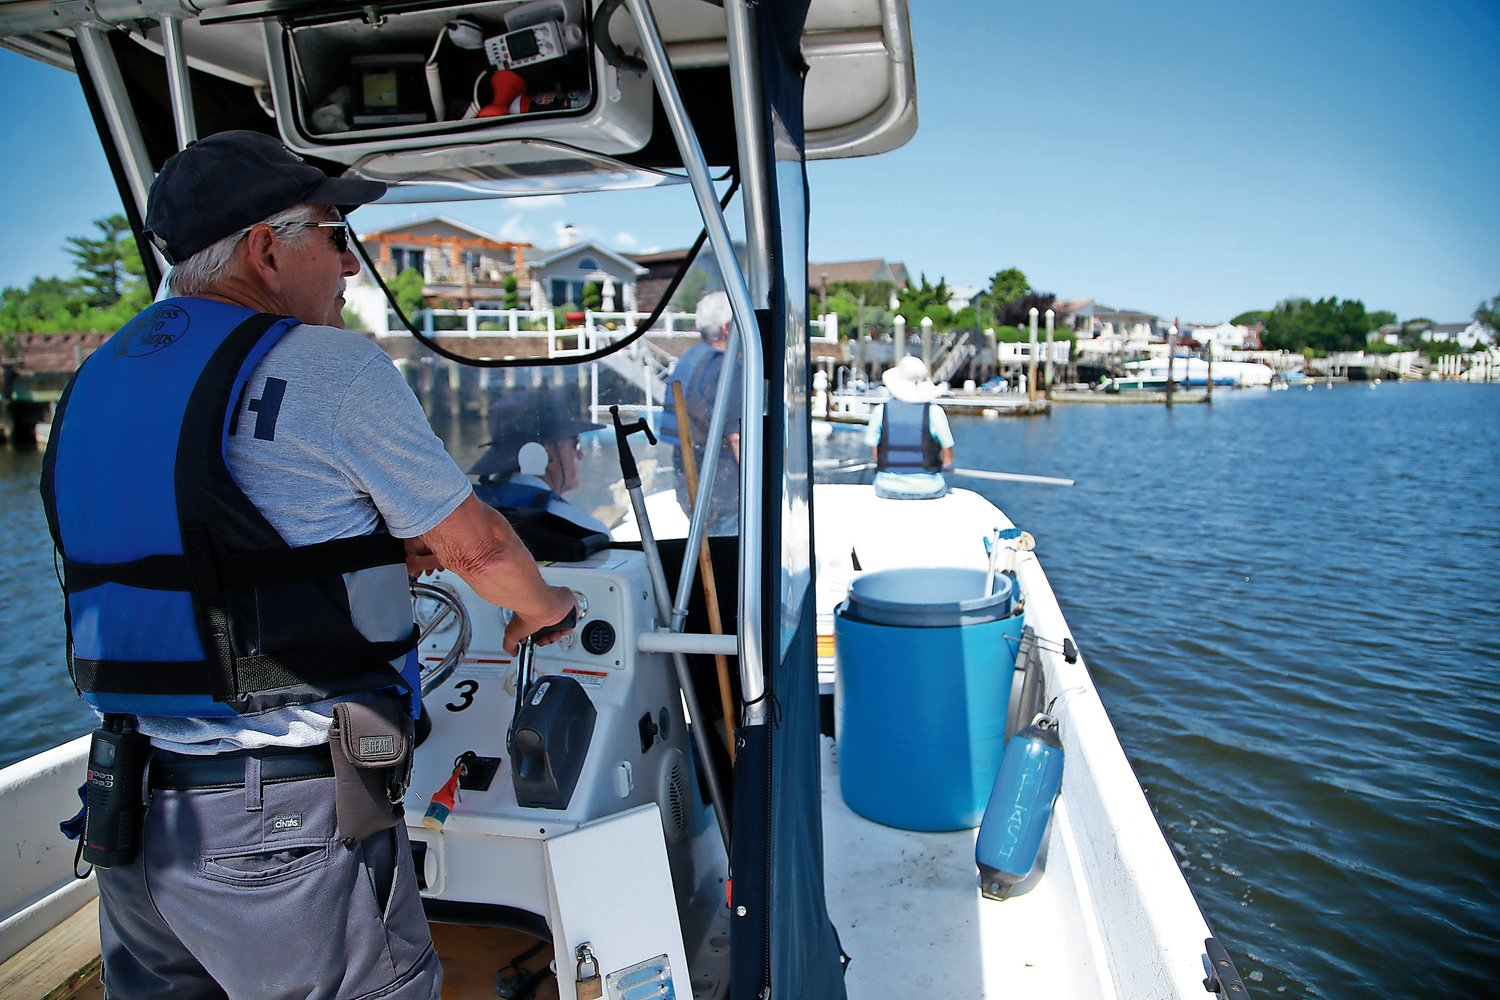 On every one of his patrols, Boat Captain Toporcer scans the waterways in search of floating debris.